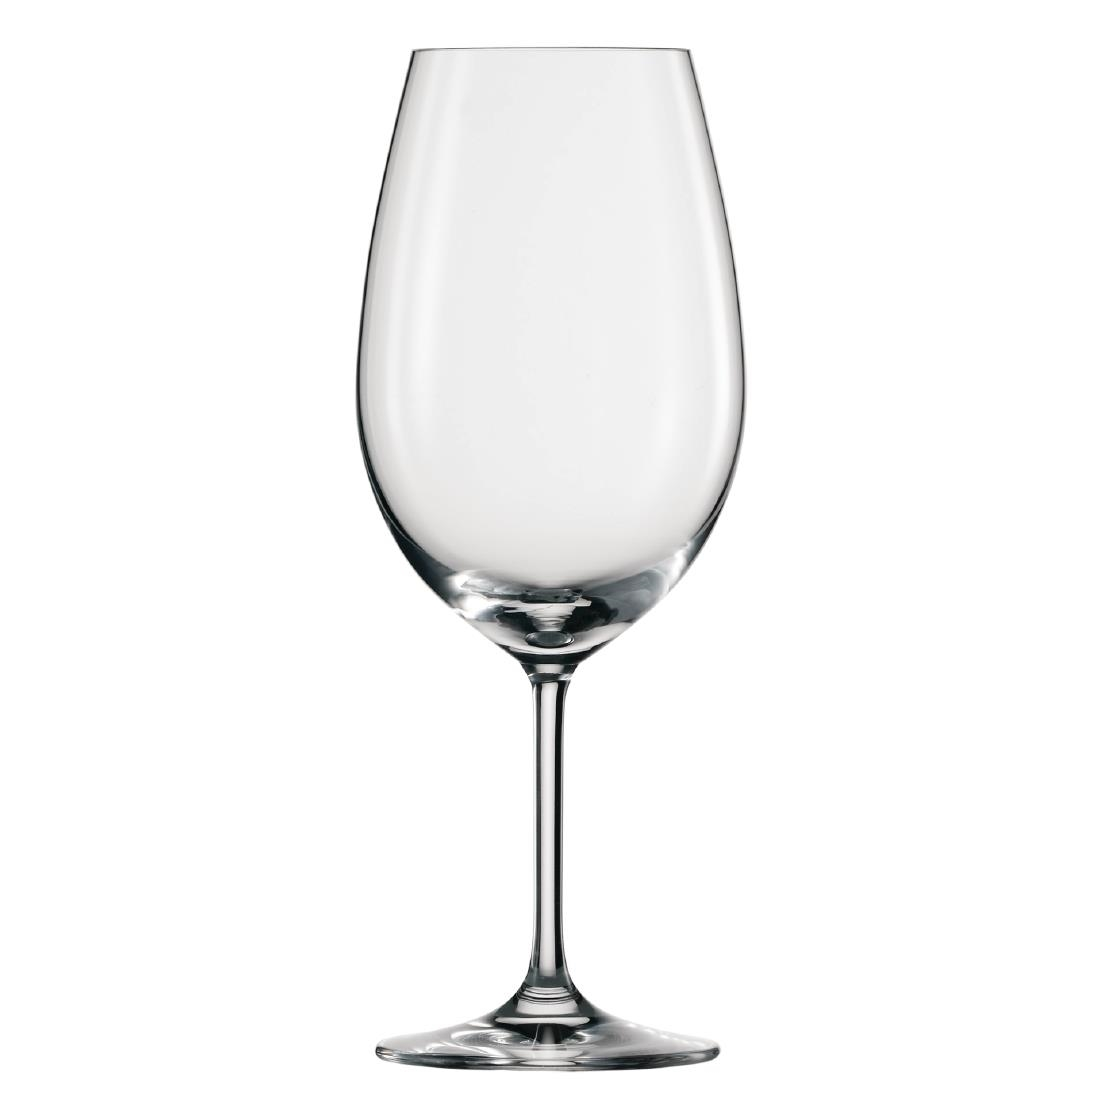 Schott Zwiesel Ivento Large Bordeaux Glass 630ml (Pack of 6) Pack of 6 Image